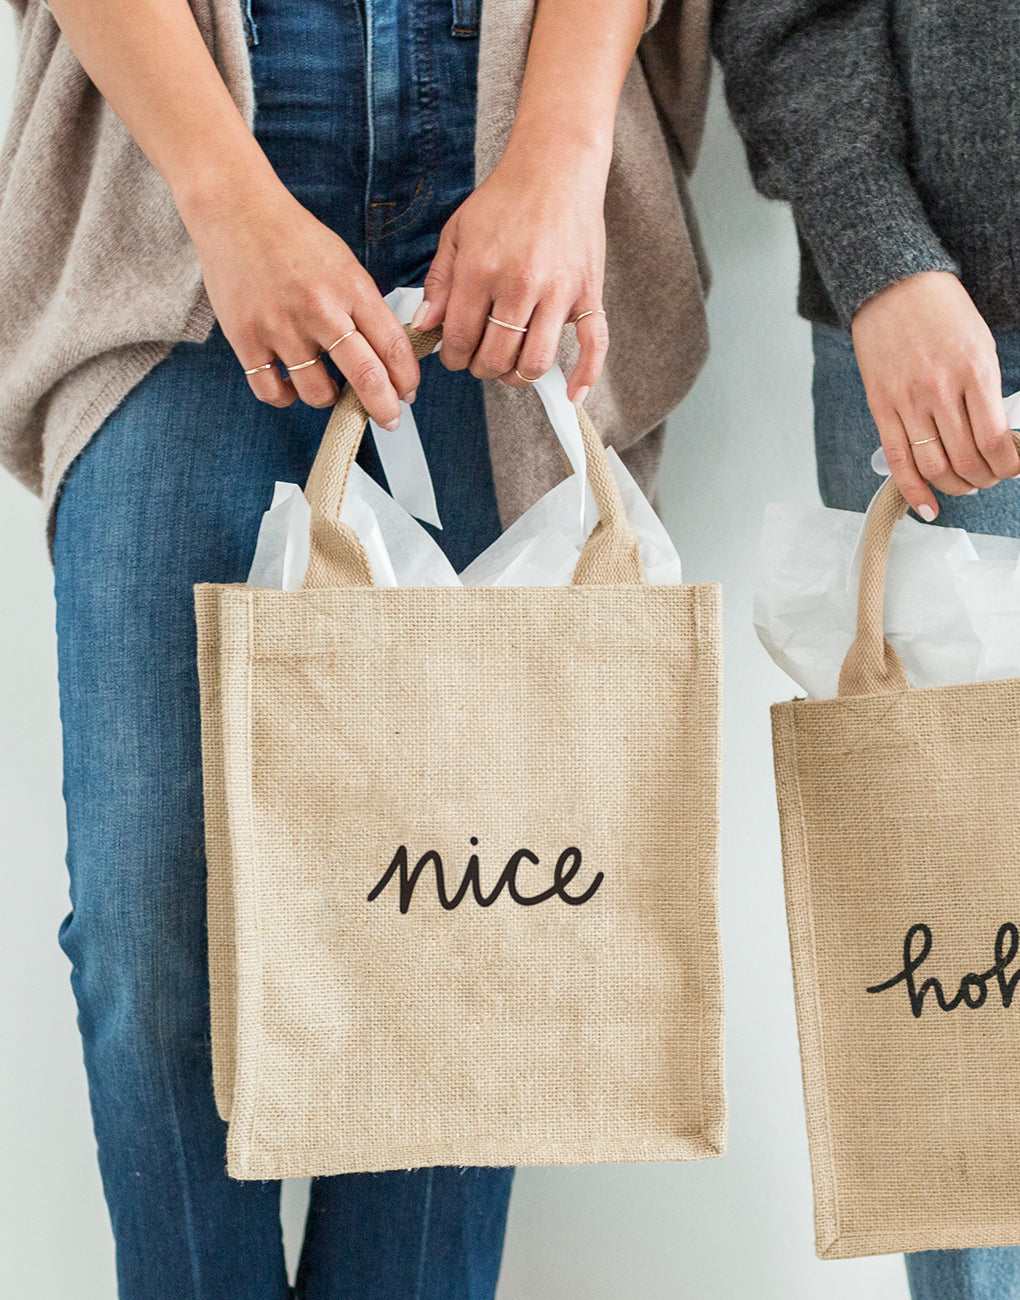 Medium Nice Reusable Gift Tote In Black Font Being Held | The Little Market